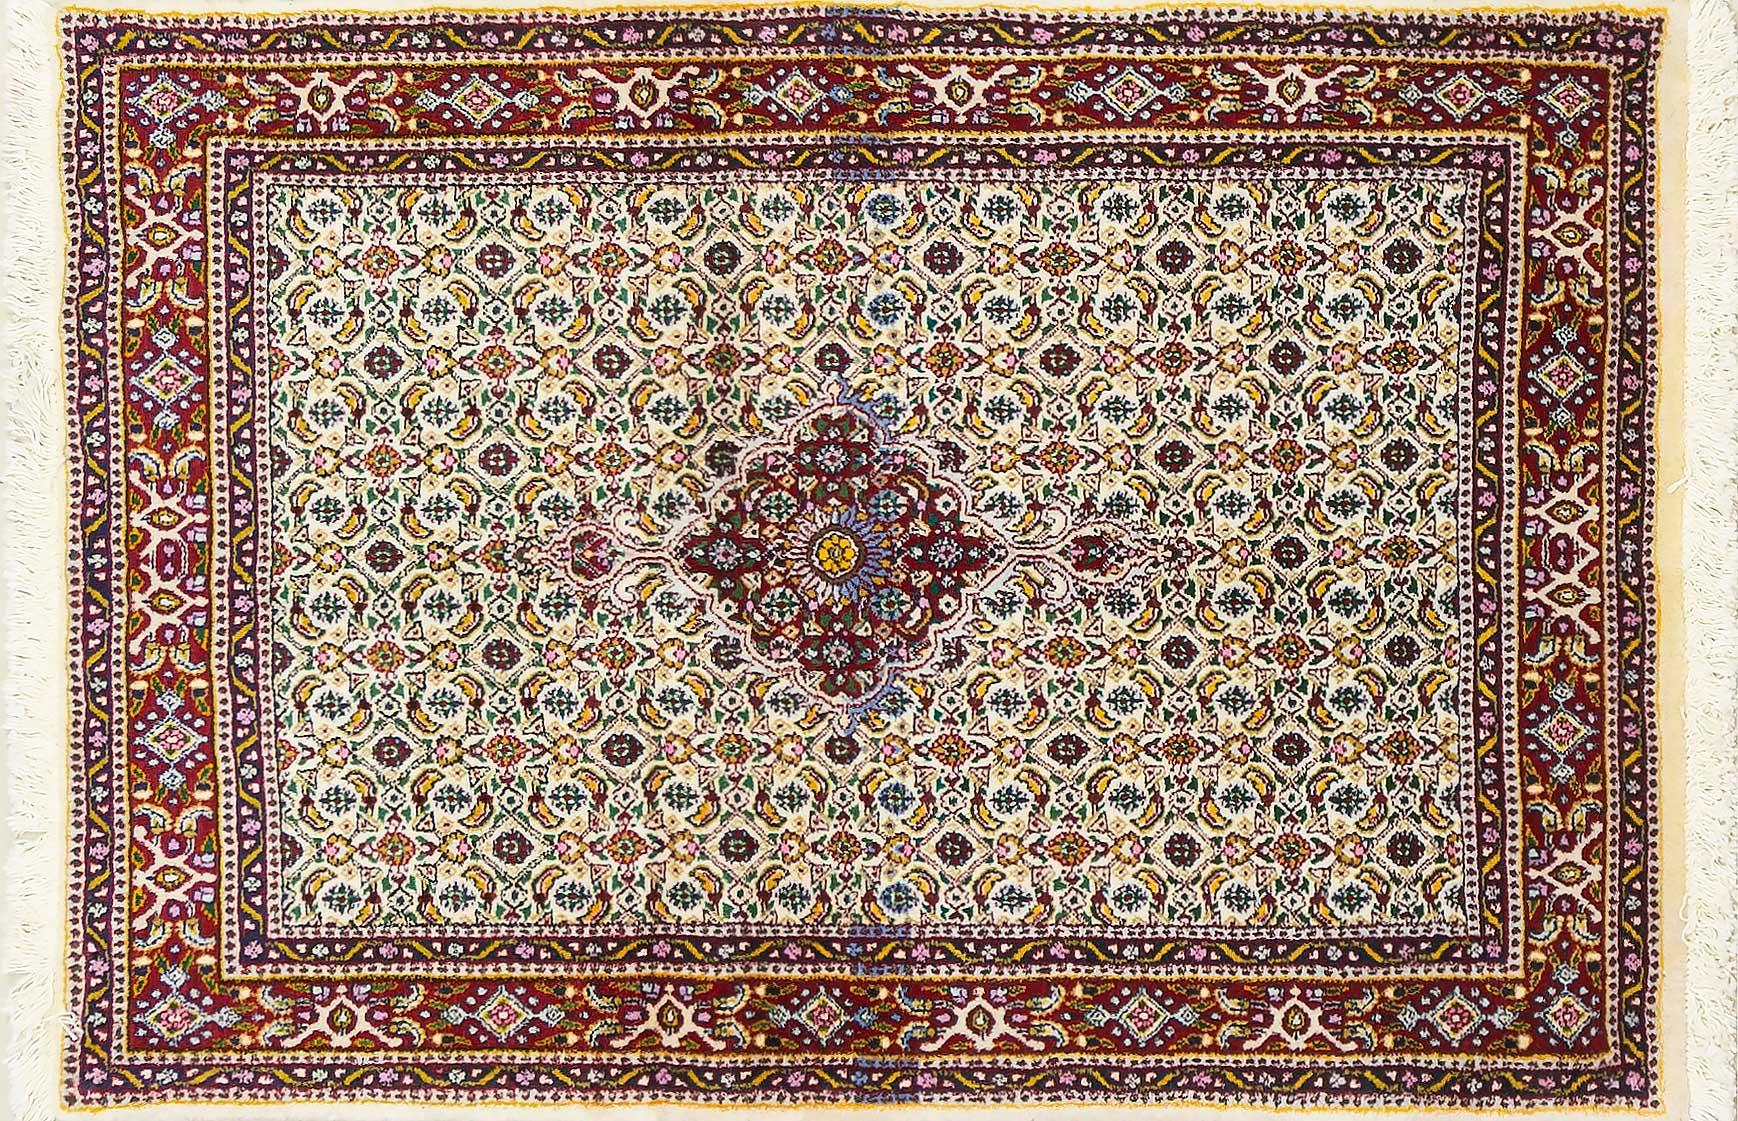 A Persian Hand Knotted Moud Rug, 143 x 96